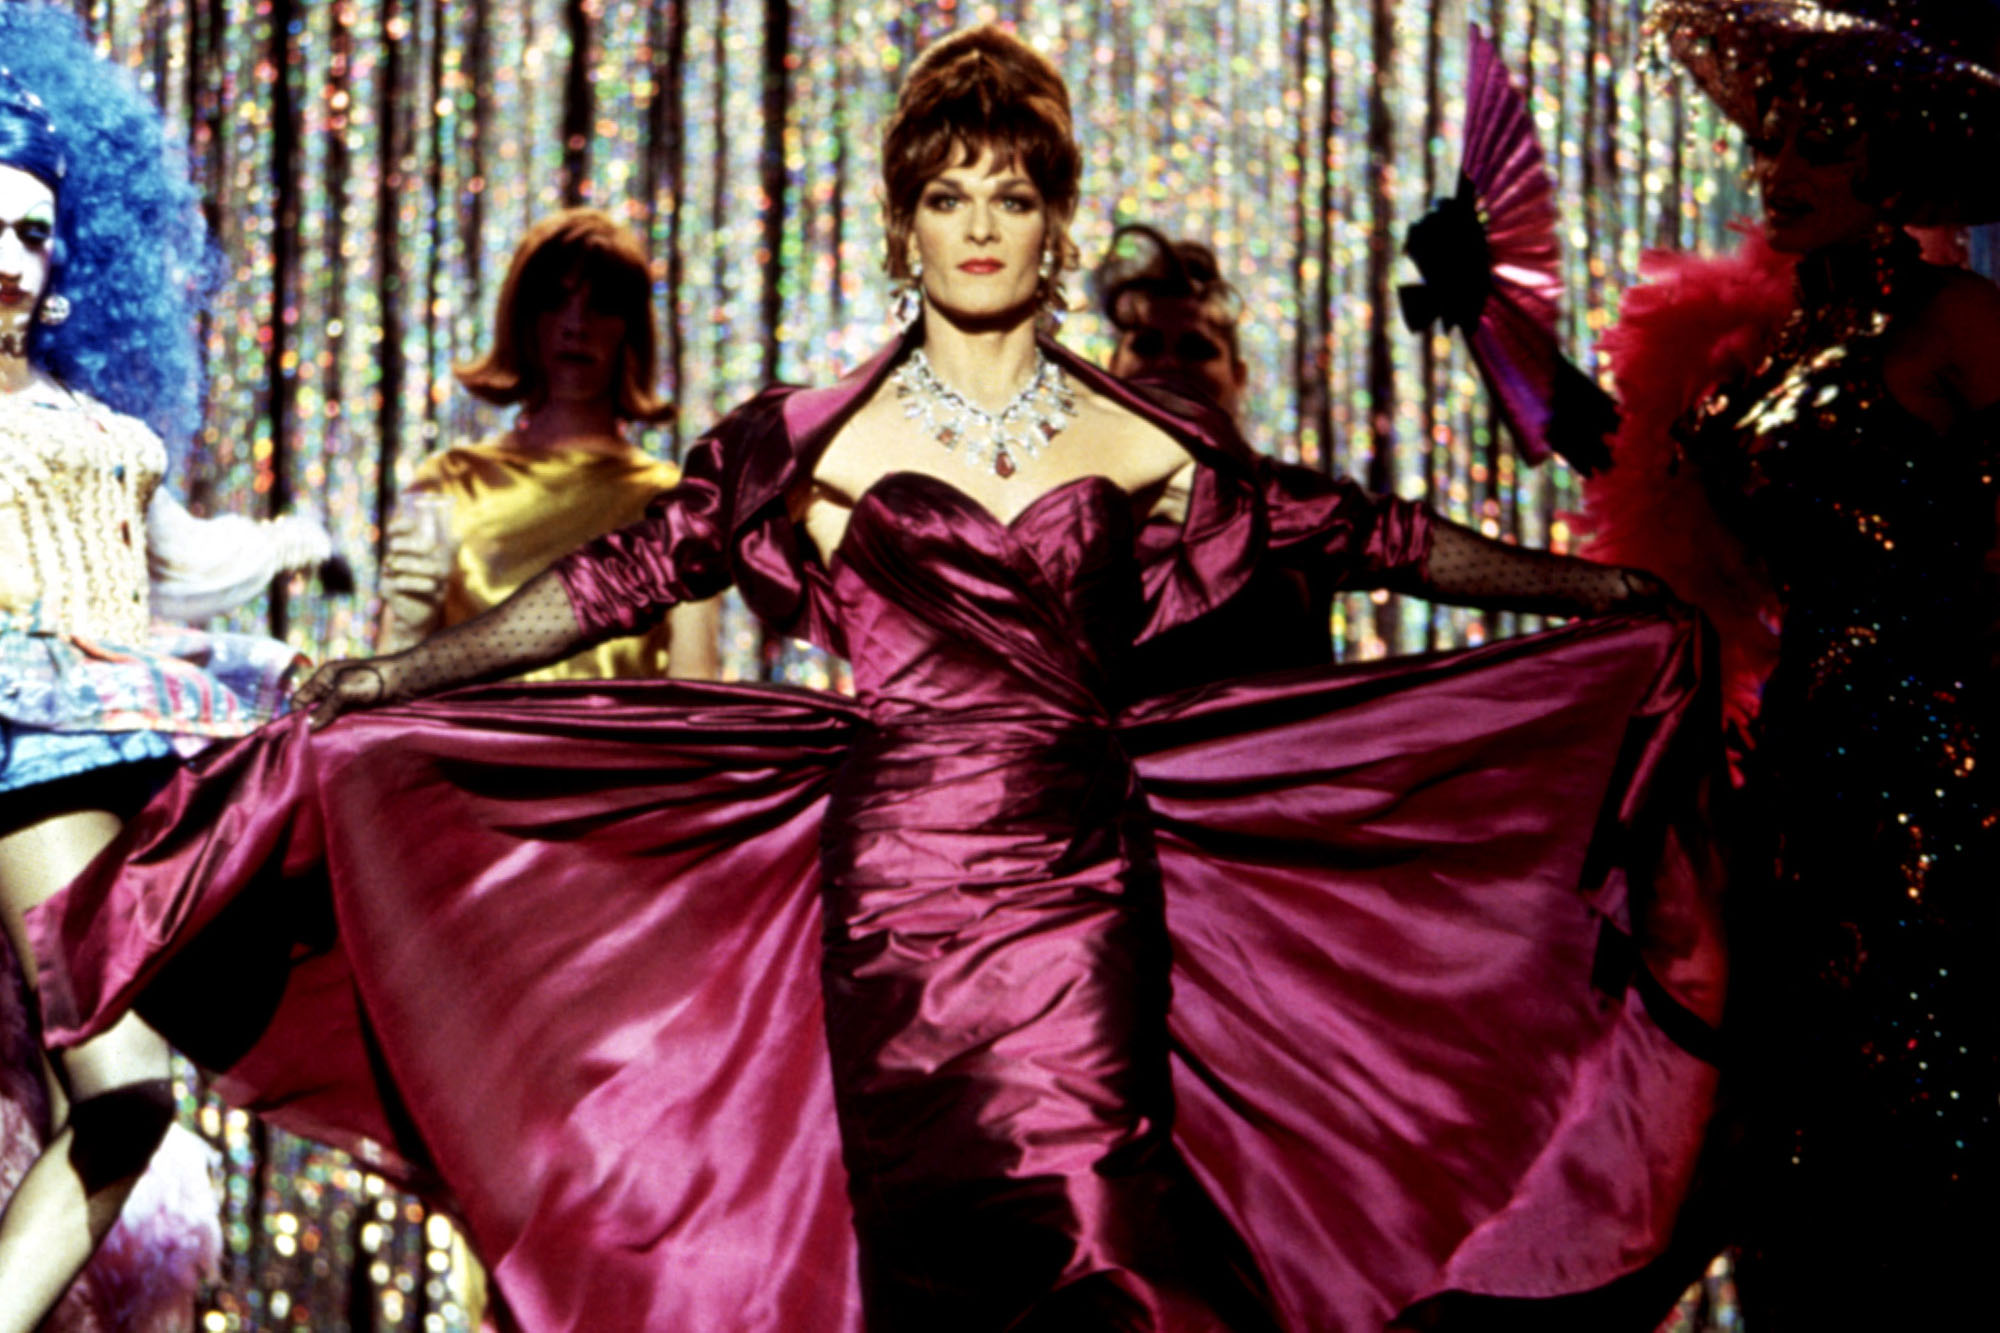 To Wong Foo' may be Broadway's next drag spectacular